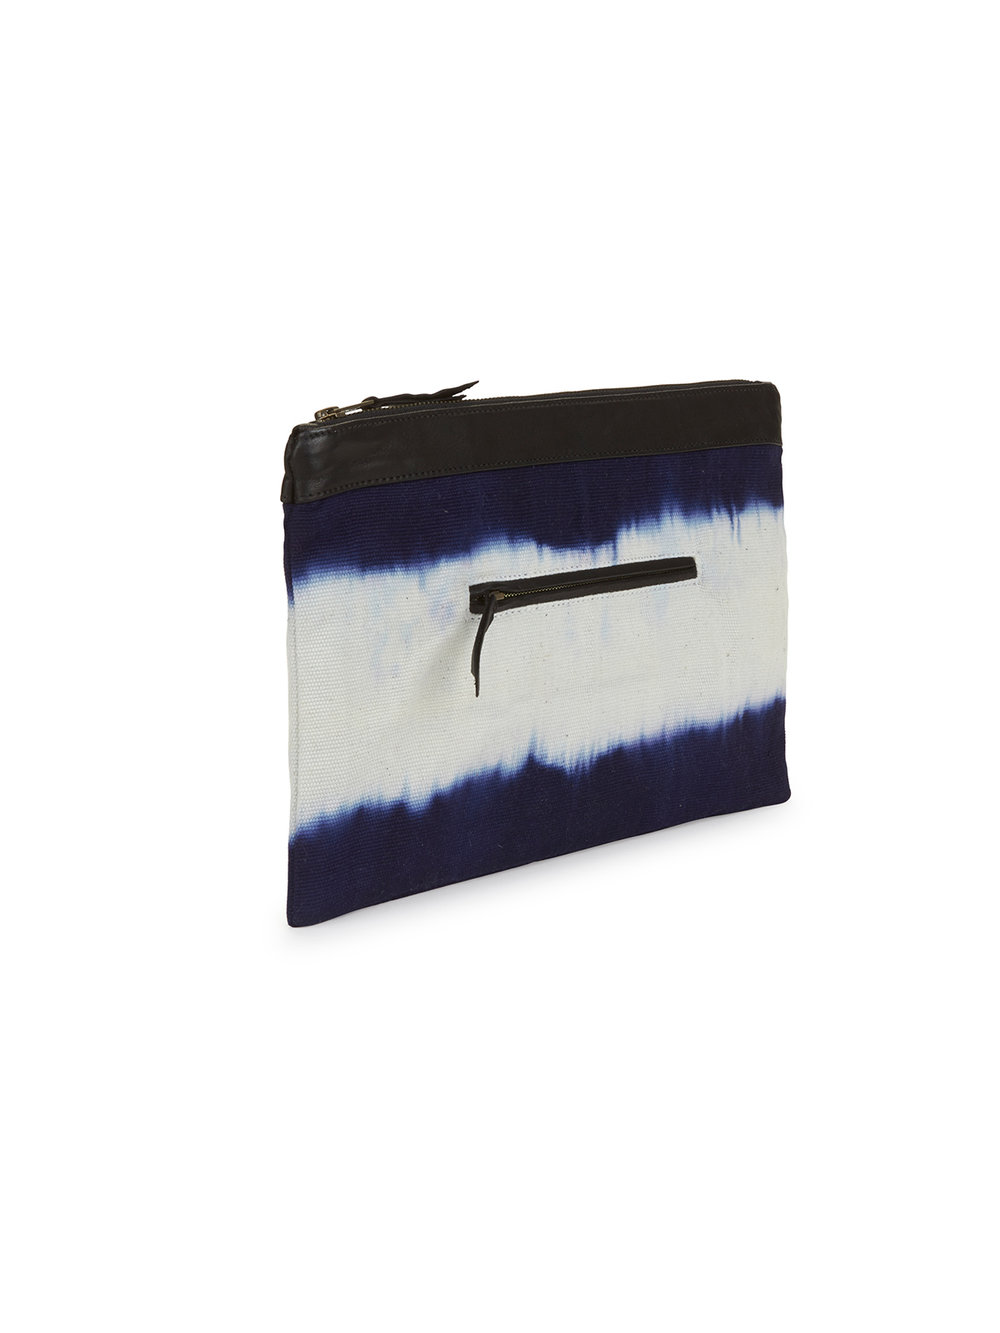 Estella_Clutch_bluewht-stripe_11494.jpg